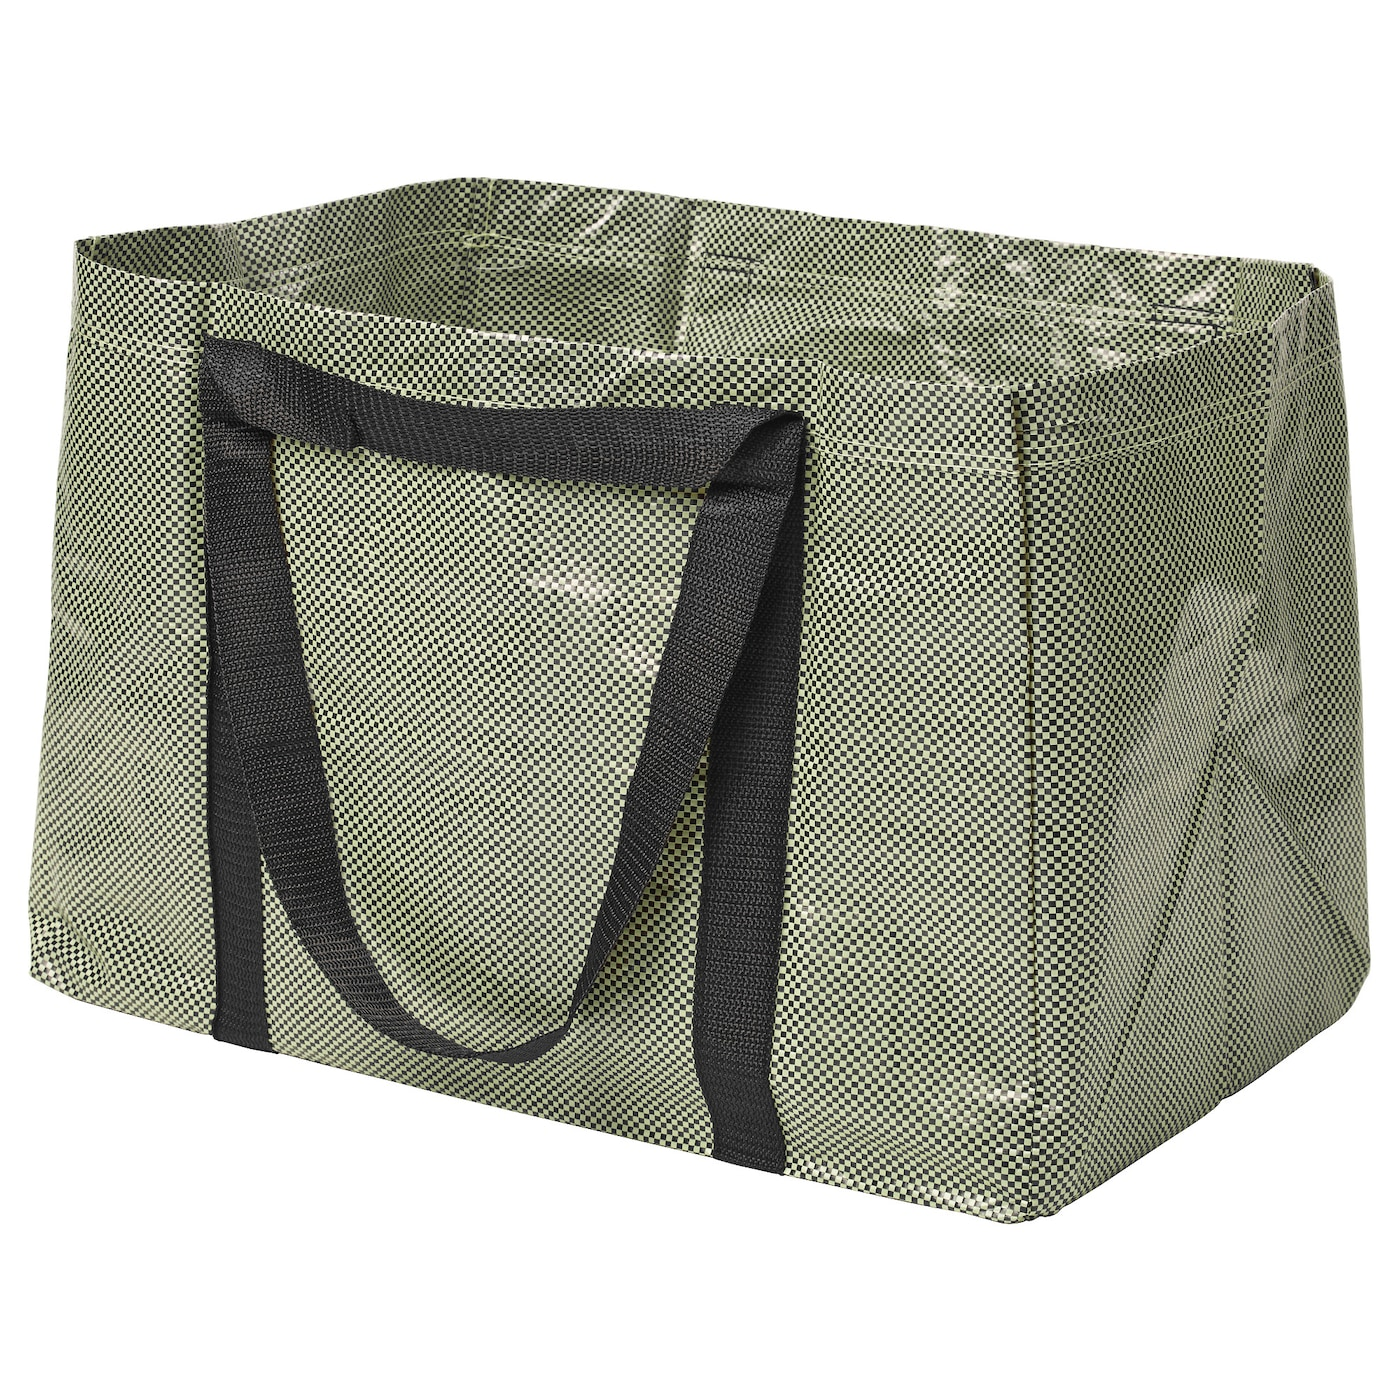 IKEA YPPERLIG carrier bag, large Takes little room to store as it folds flat.